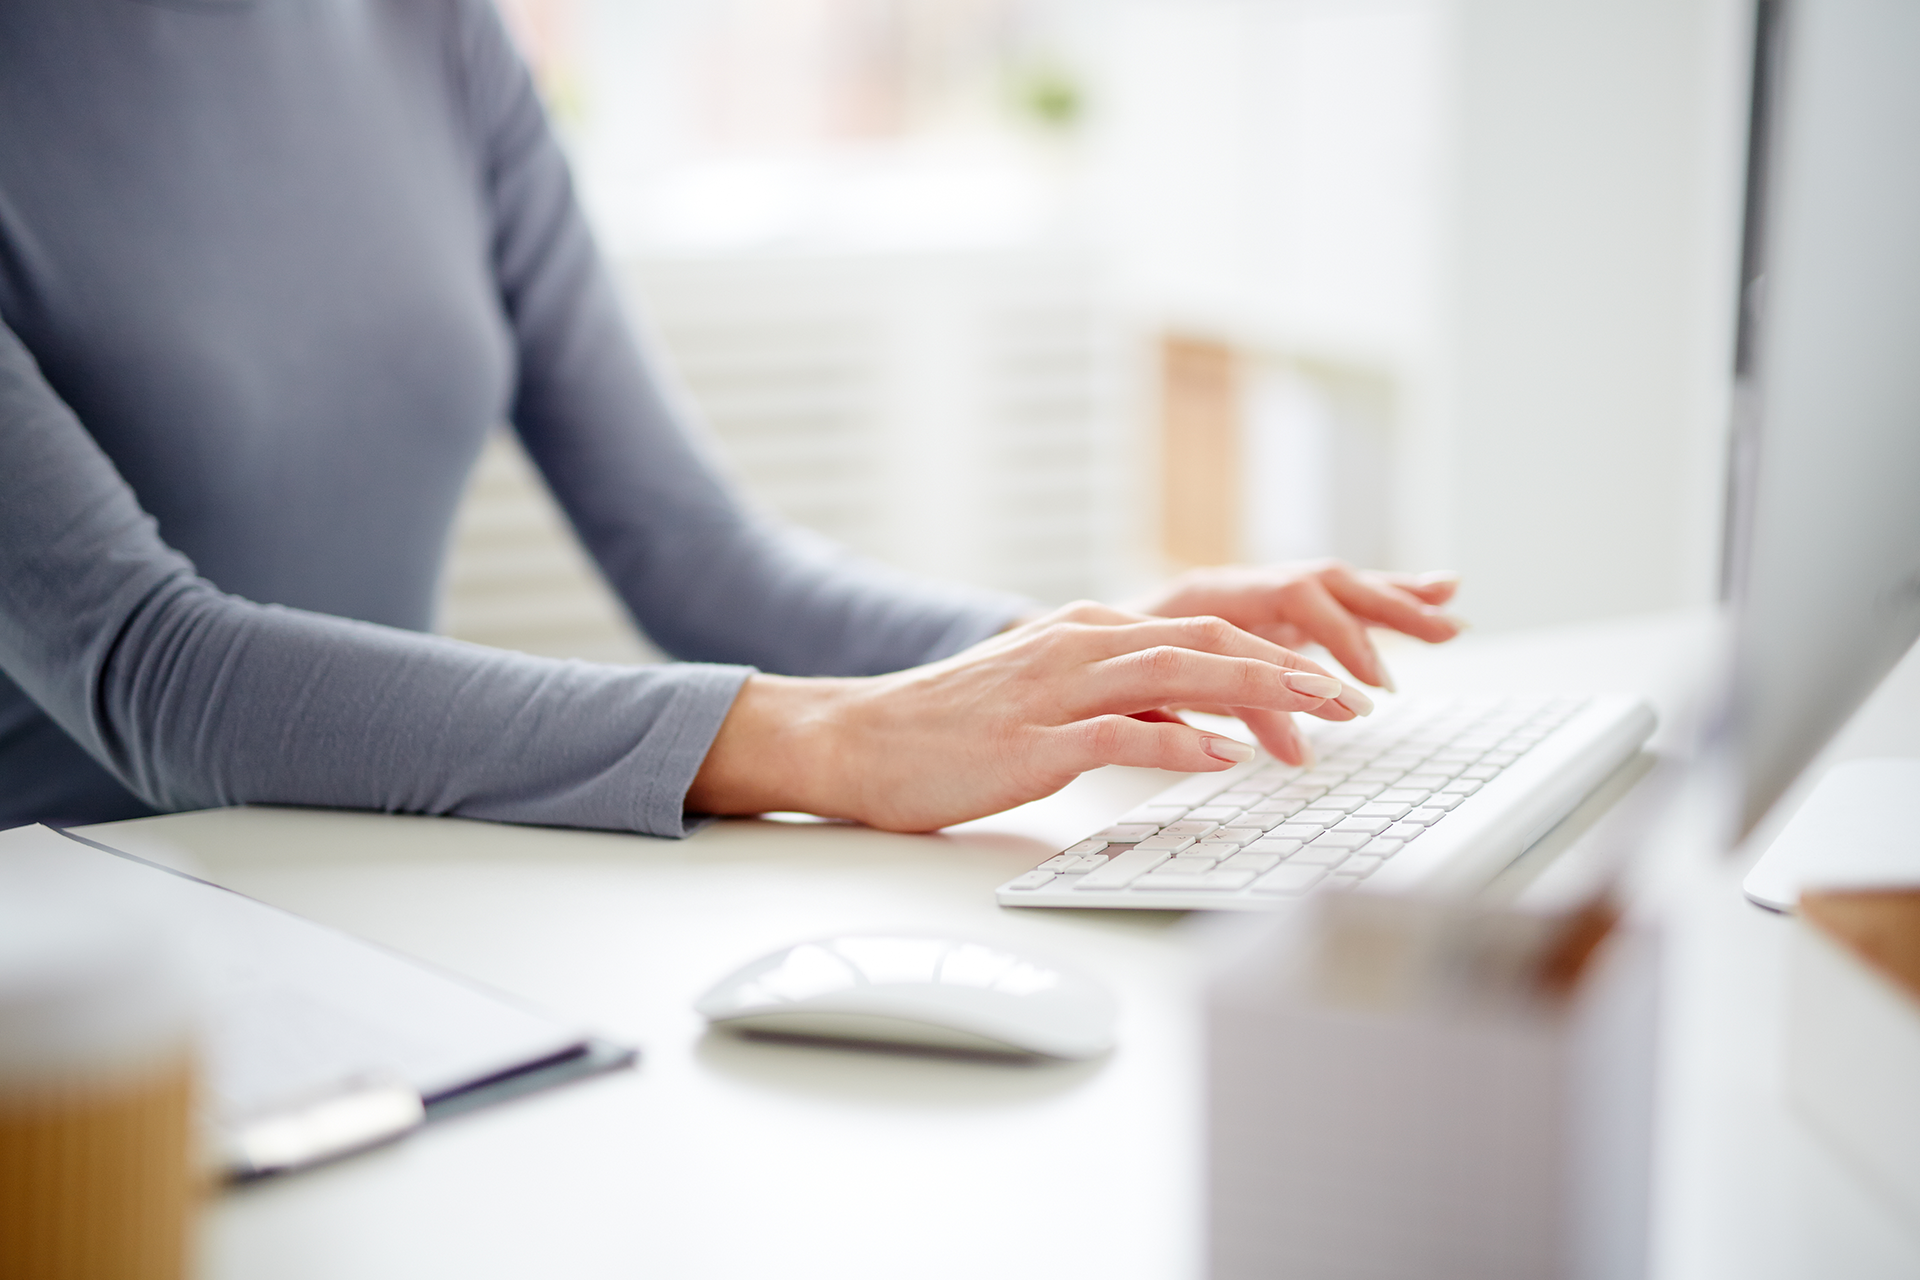 Why choose a virtual assistant